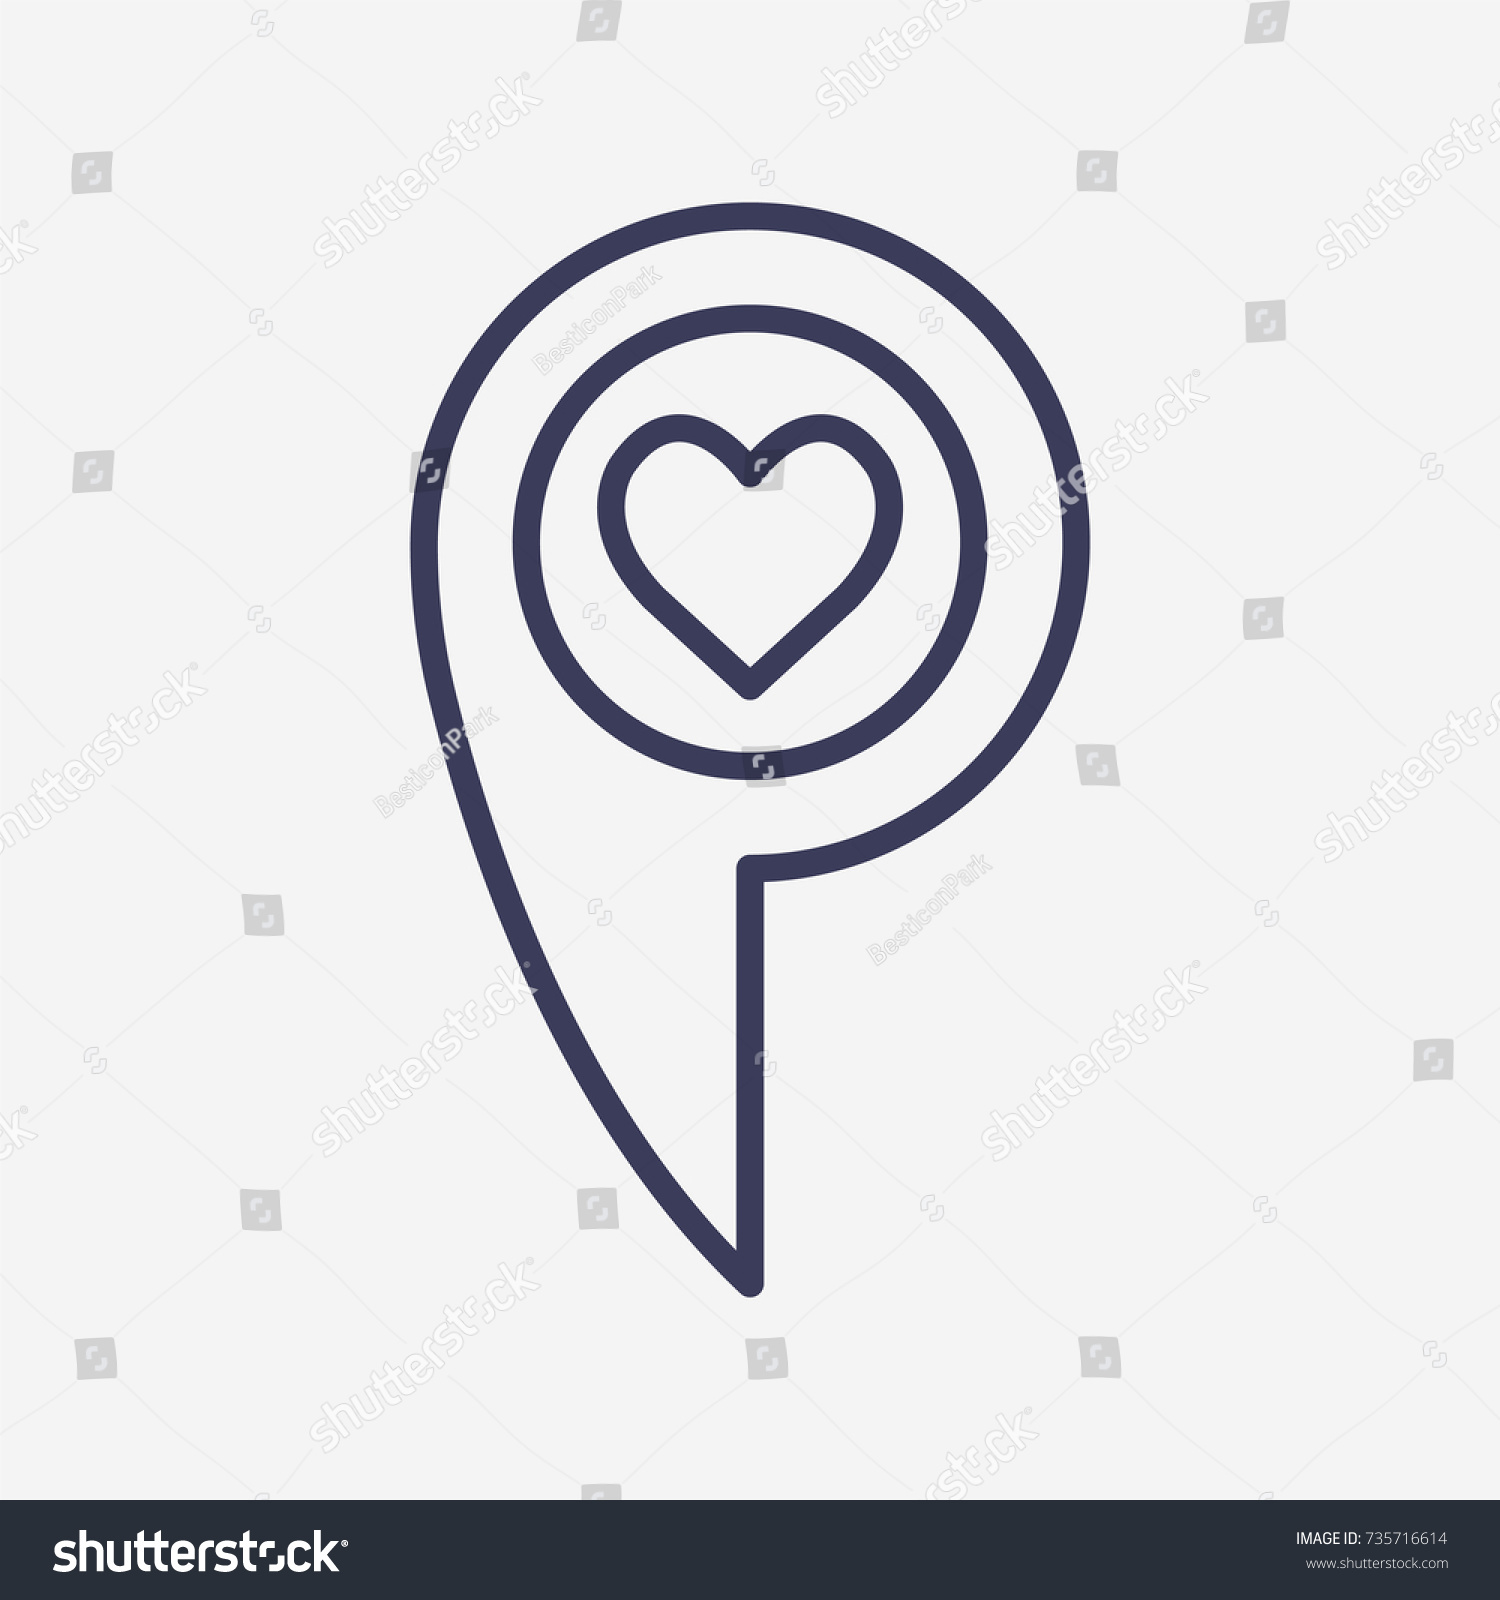 Outline heart icon illustration vector symbol stock vector outline heart icon illustration vector symbol stock vector 735716614 shutterstock buycottarizona Image collections